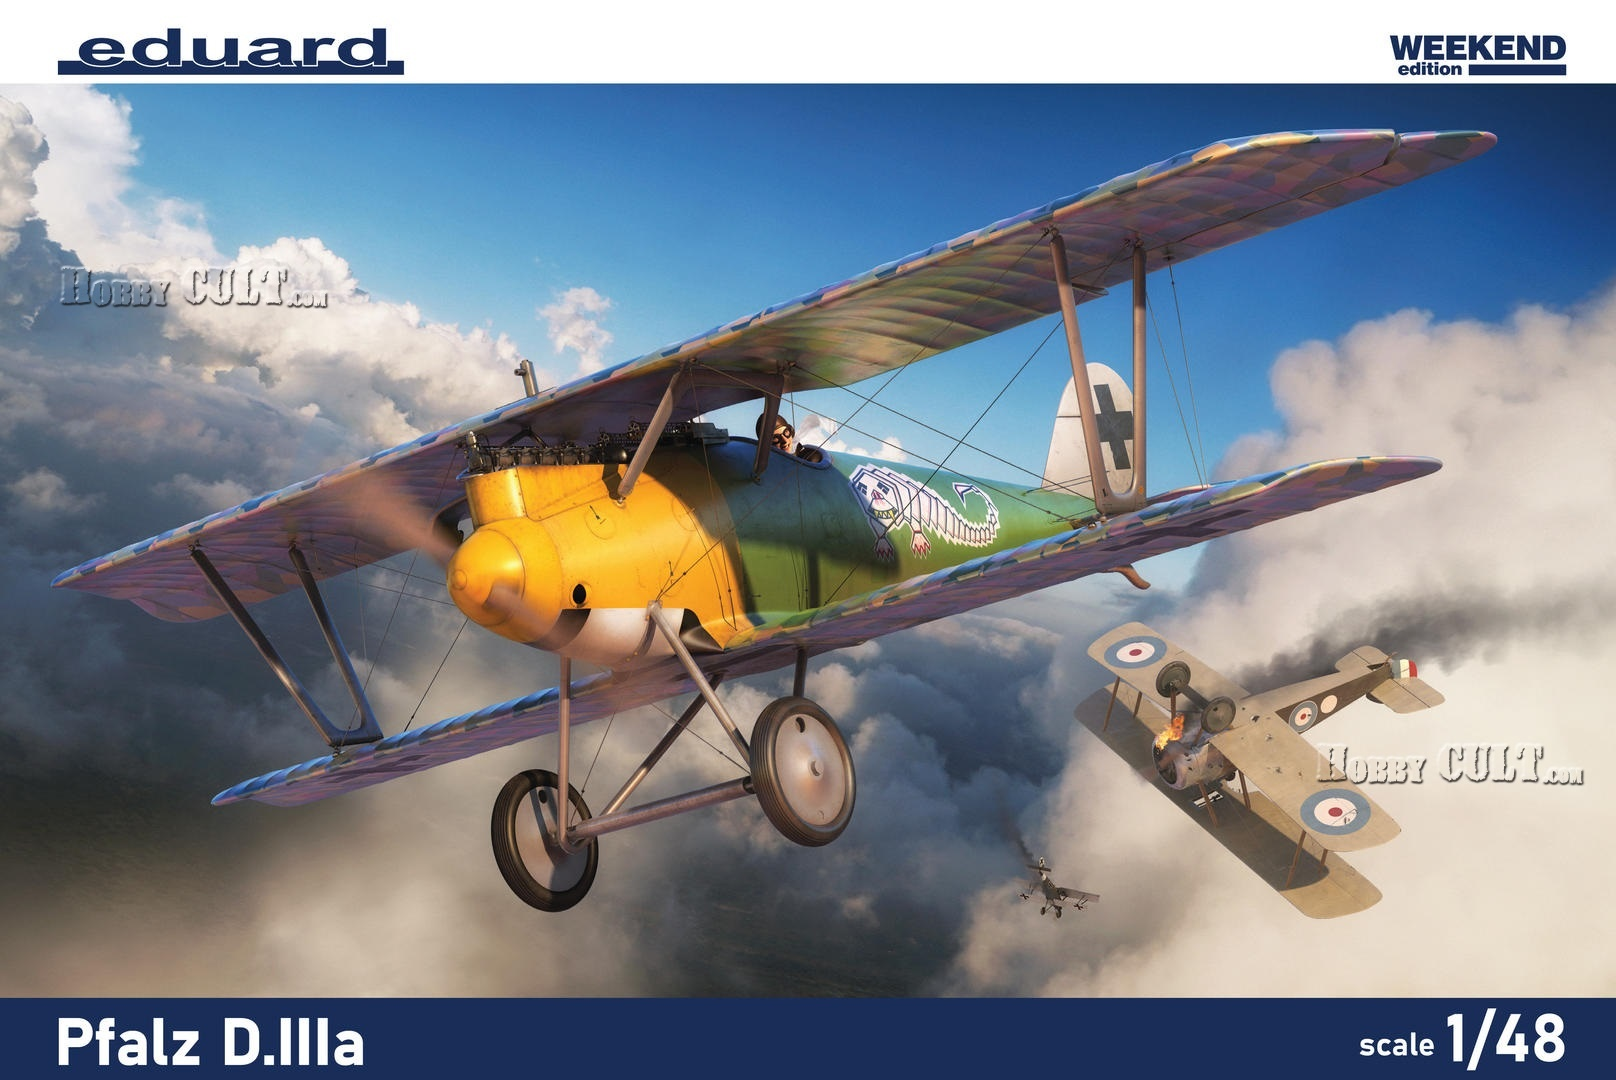 1:48 Pfalz D.IIIa (Weekend edition kit)